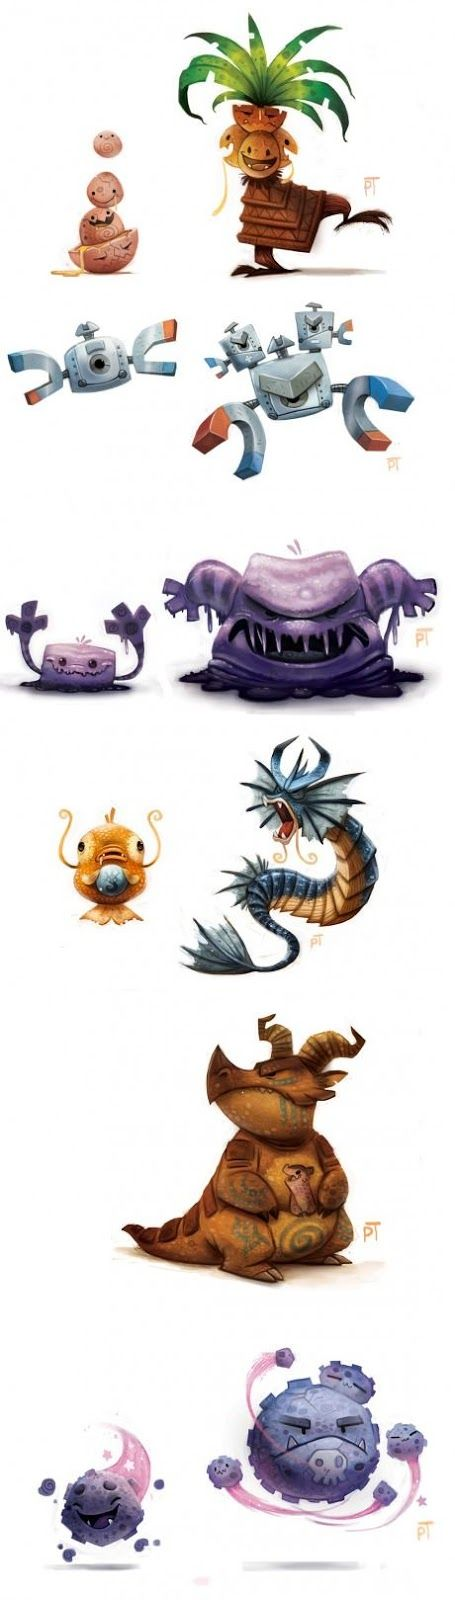 Piper Thibodeau, whose work includes incredible, adorable takes on cryptids and famous monsters, and the thing that really hooked me redesigns for over a hundred of the original Pokémon.